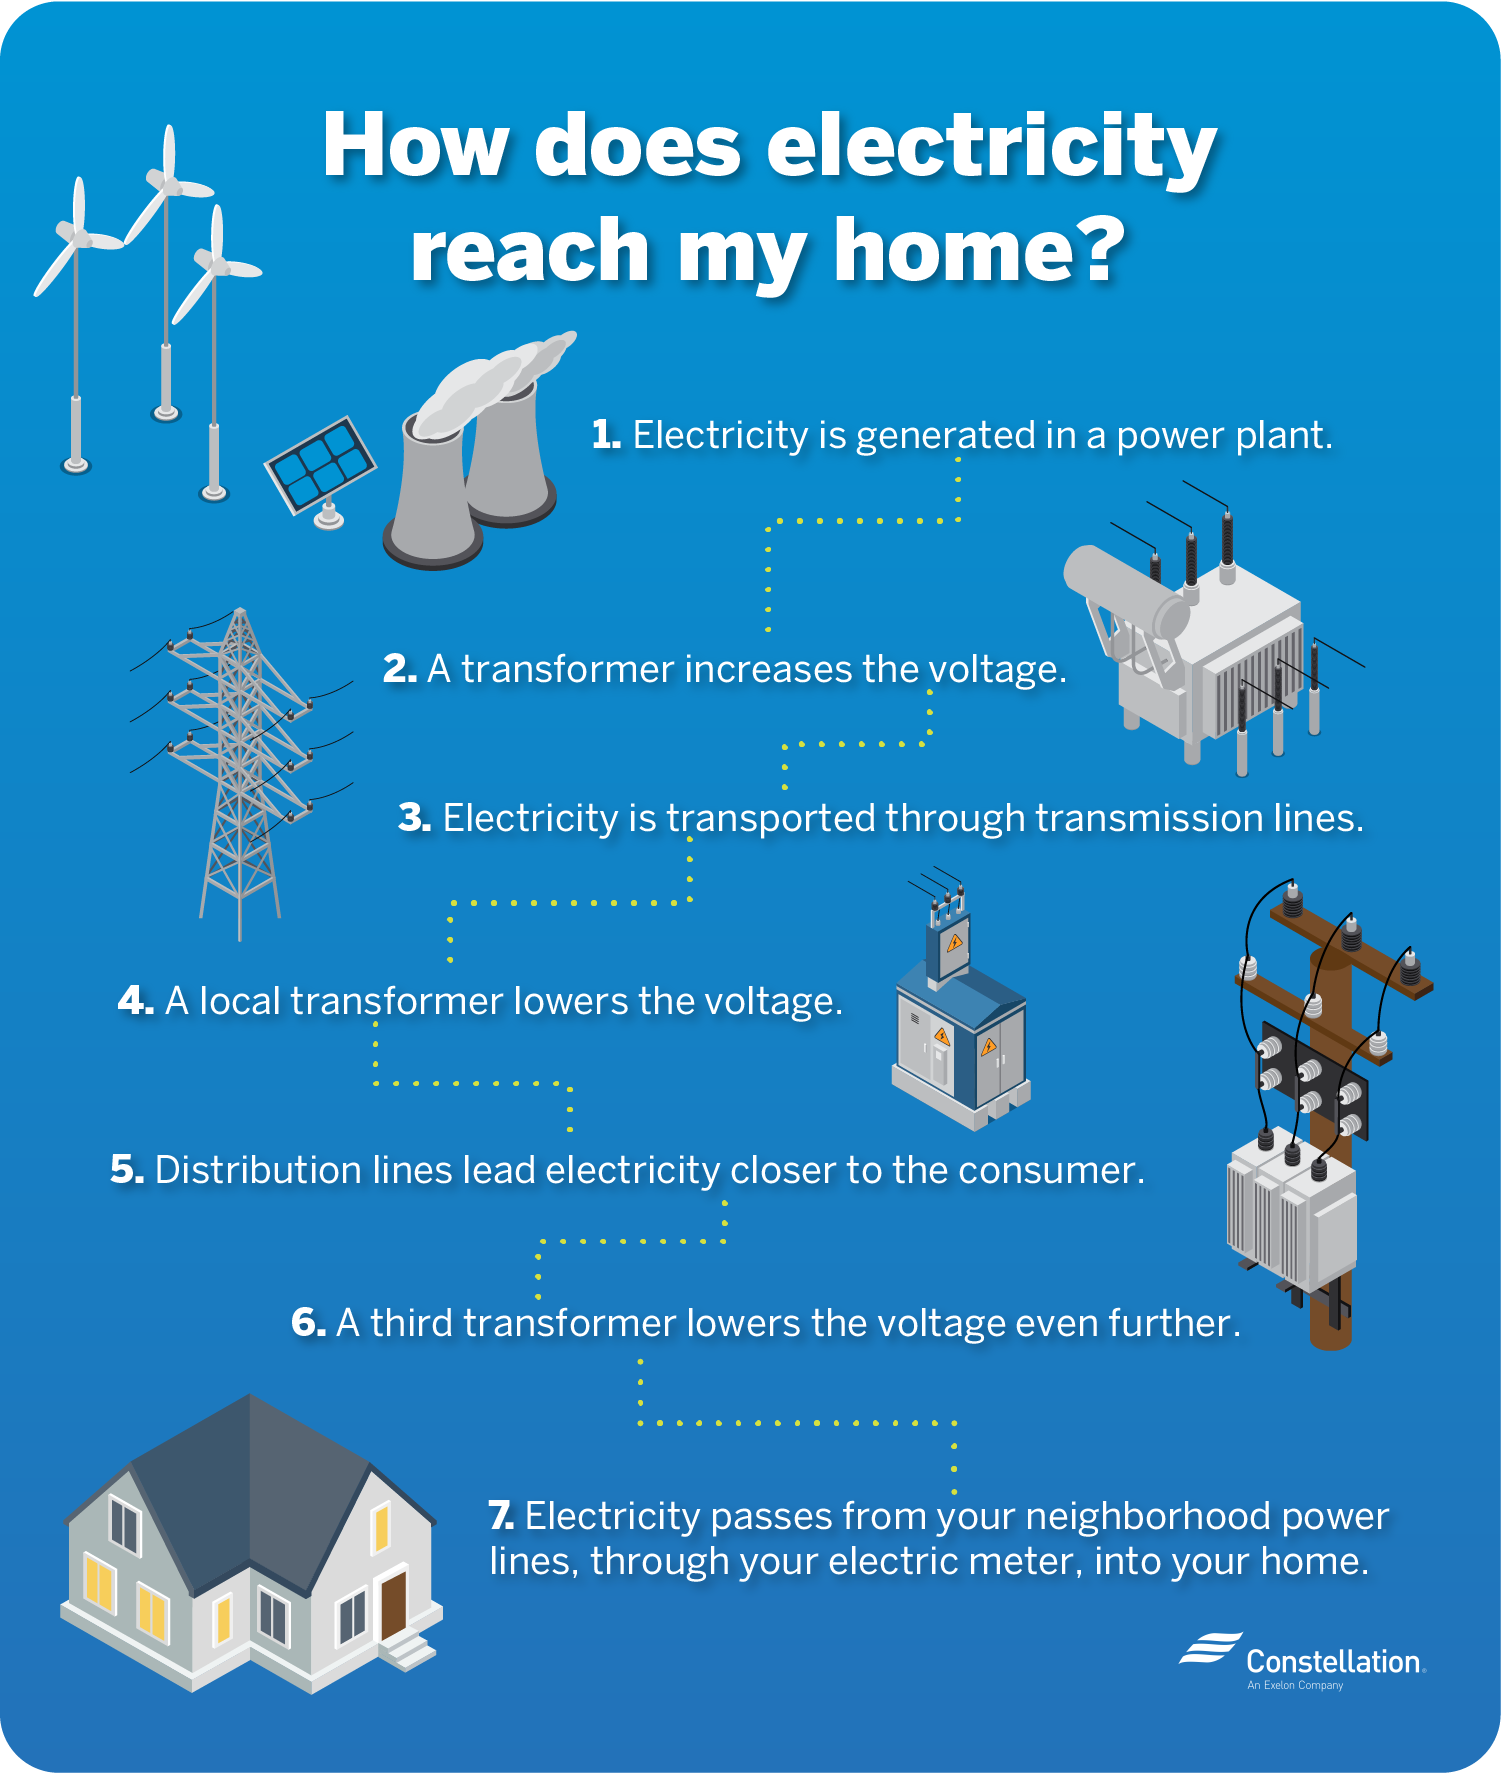 How does electricity reach my home?